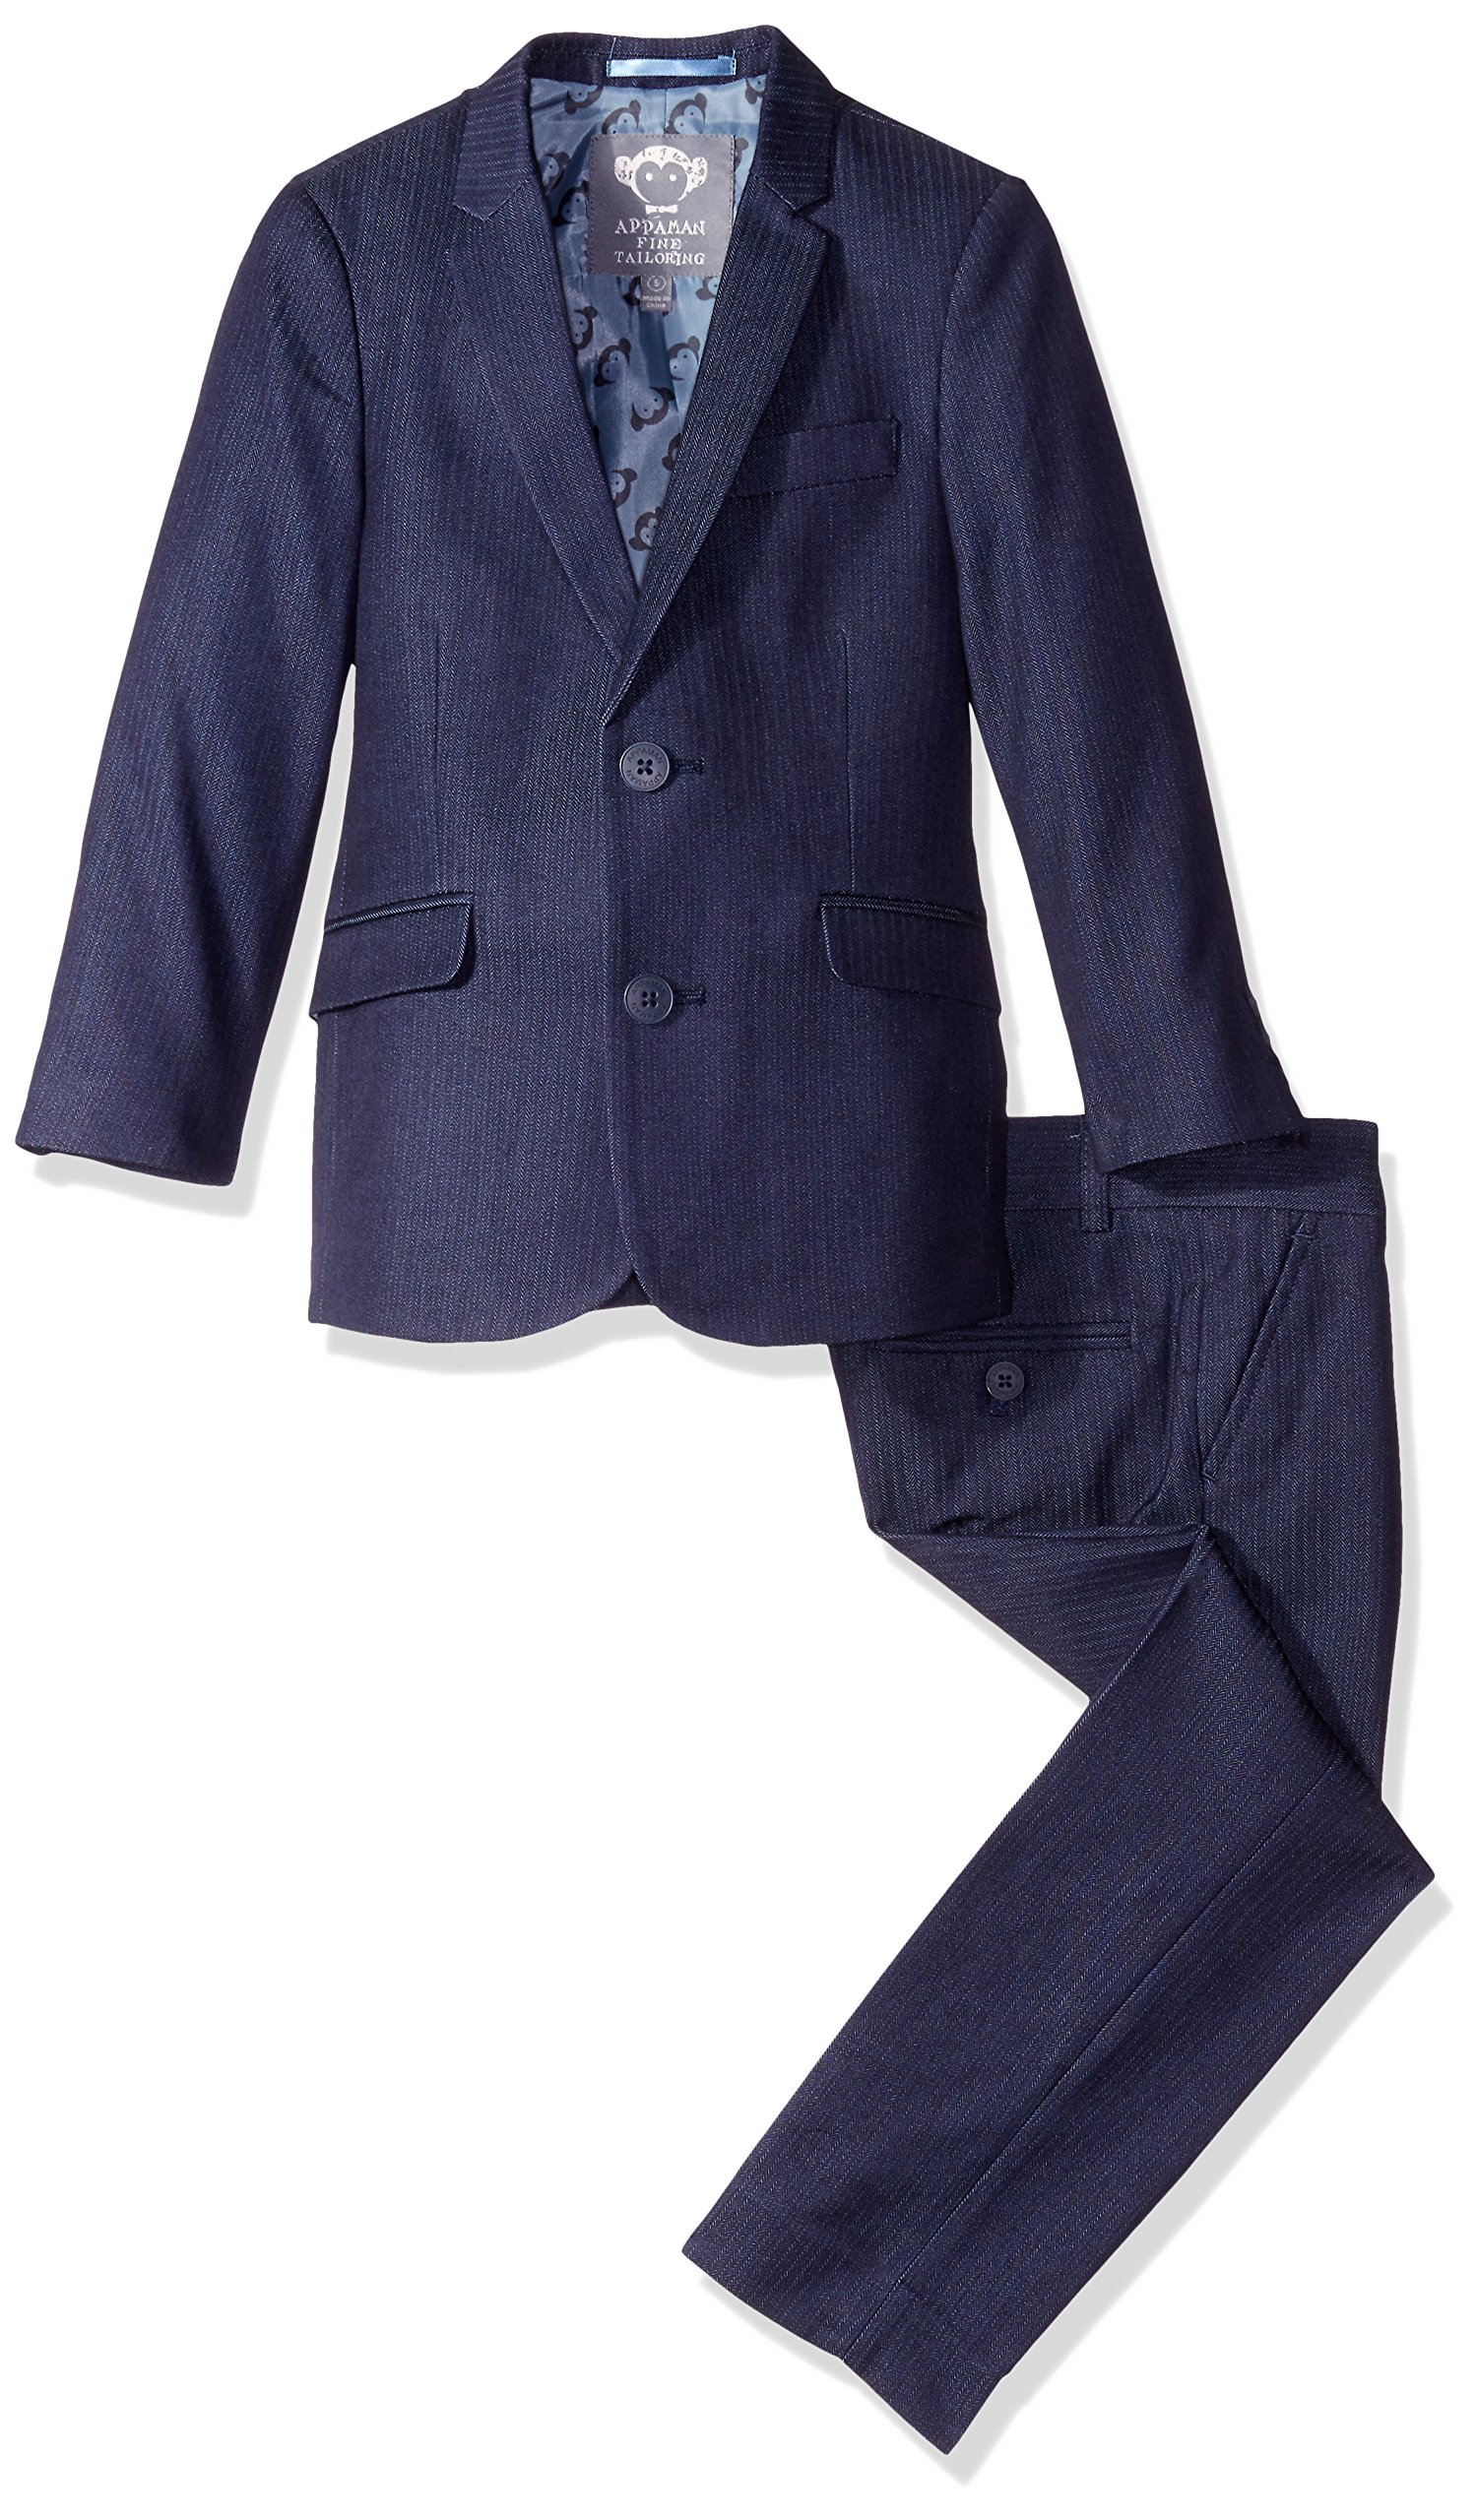 Appaman Little Boys' Toddler Mod Suit, Navy Herringbone, 3